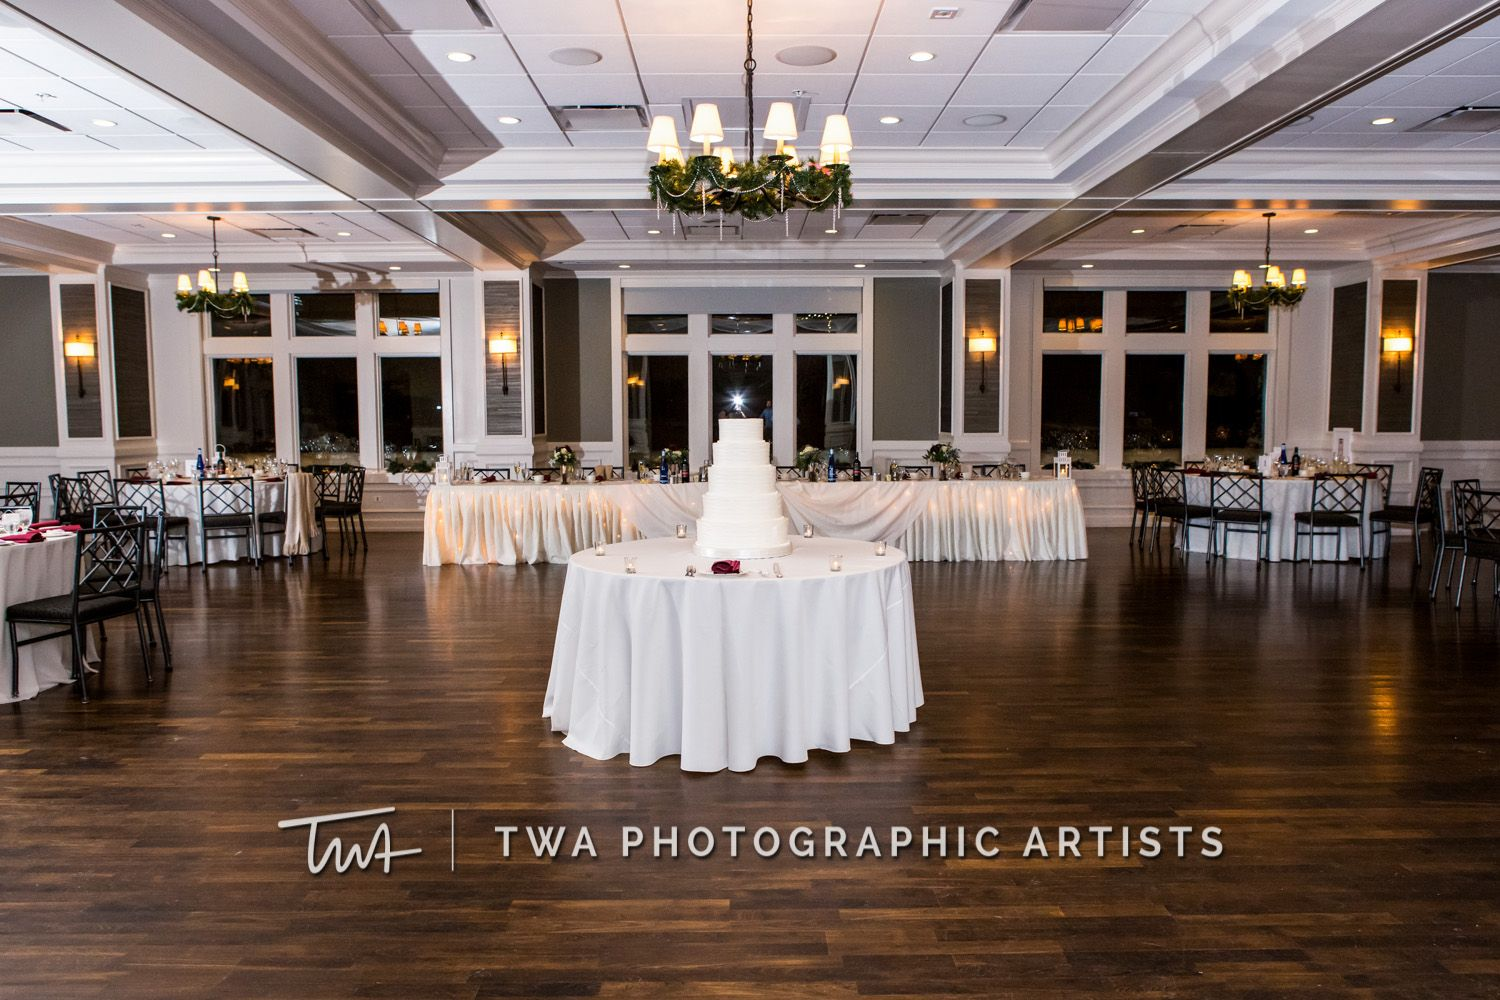 Twa Photographic Artists Weddings At Chevy Chase Click The Photo To See Our Website Chevy Chase Country Club Country Club Wedding Photographic Artist